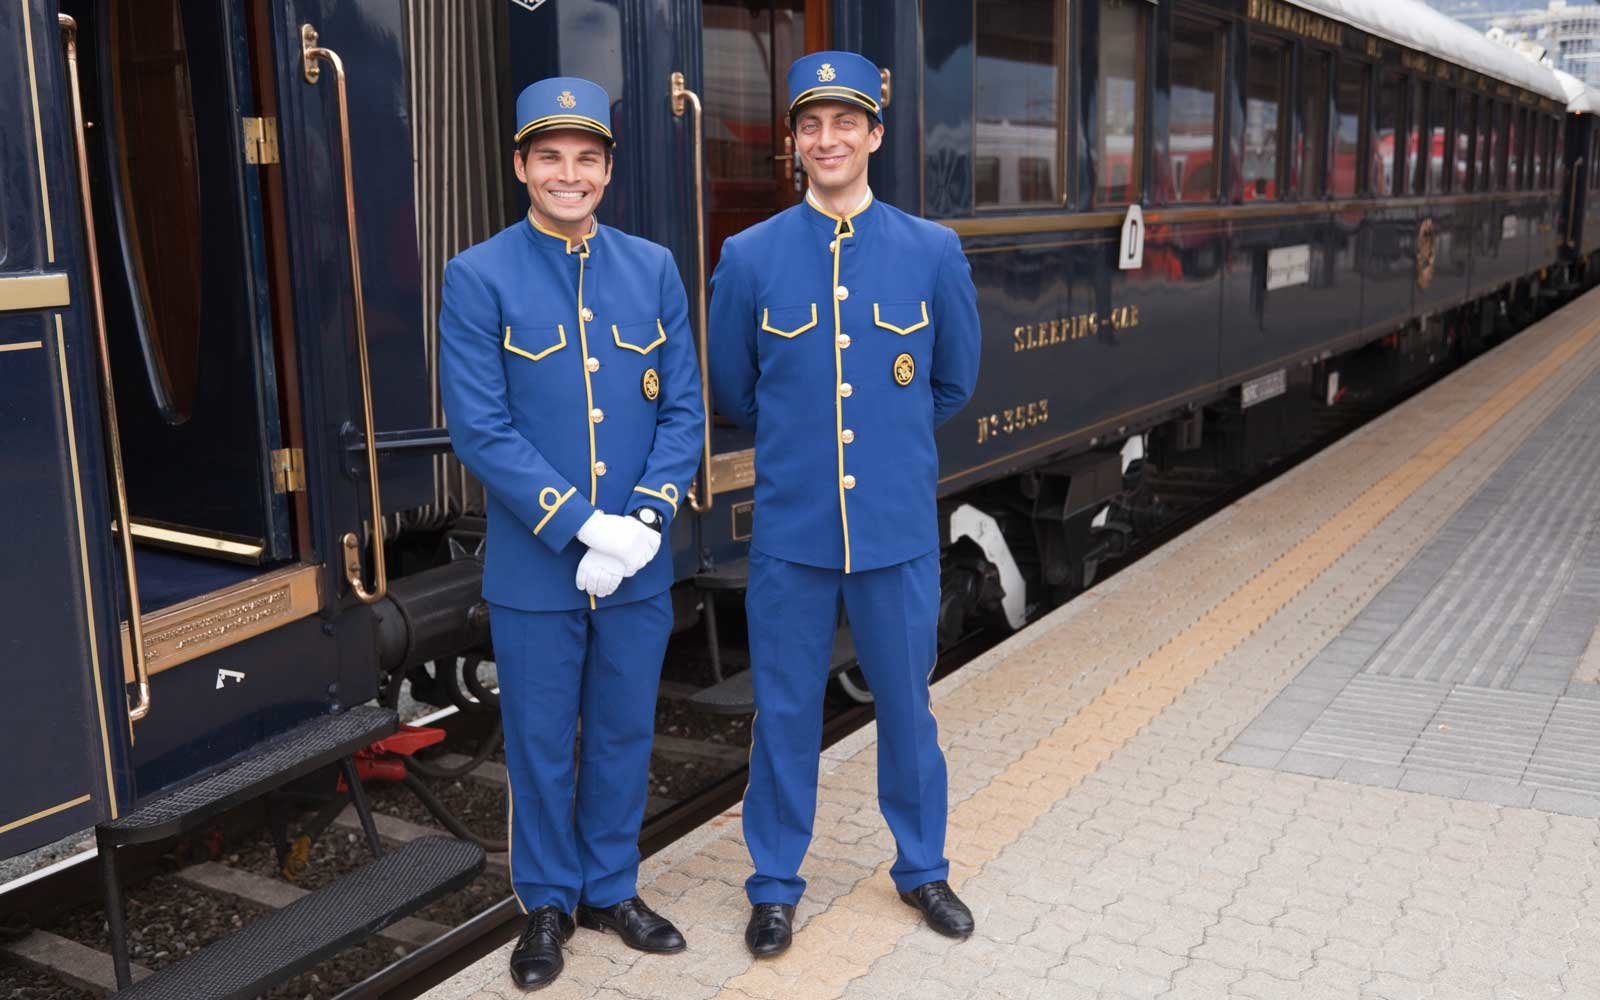 Stewards on the Venice Simplon Orient Express train, having a short stop at Innsbruck, Austria